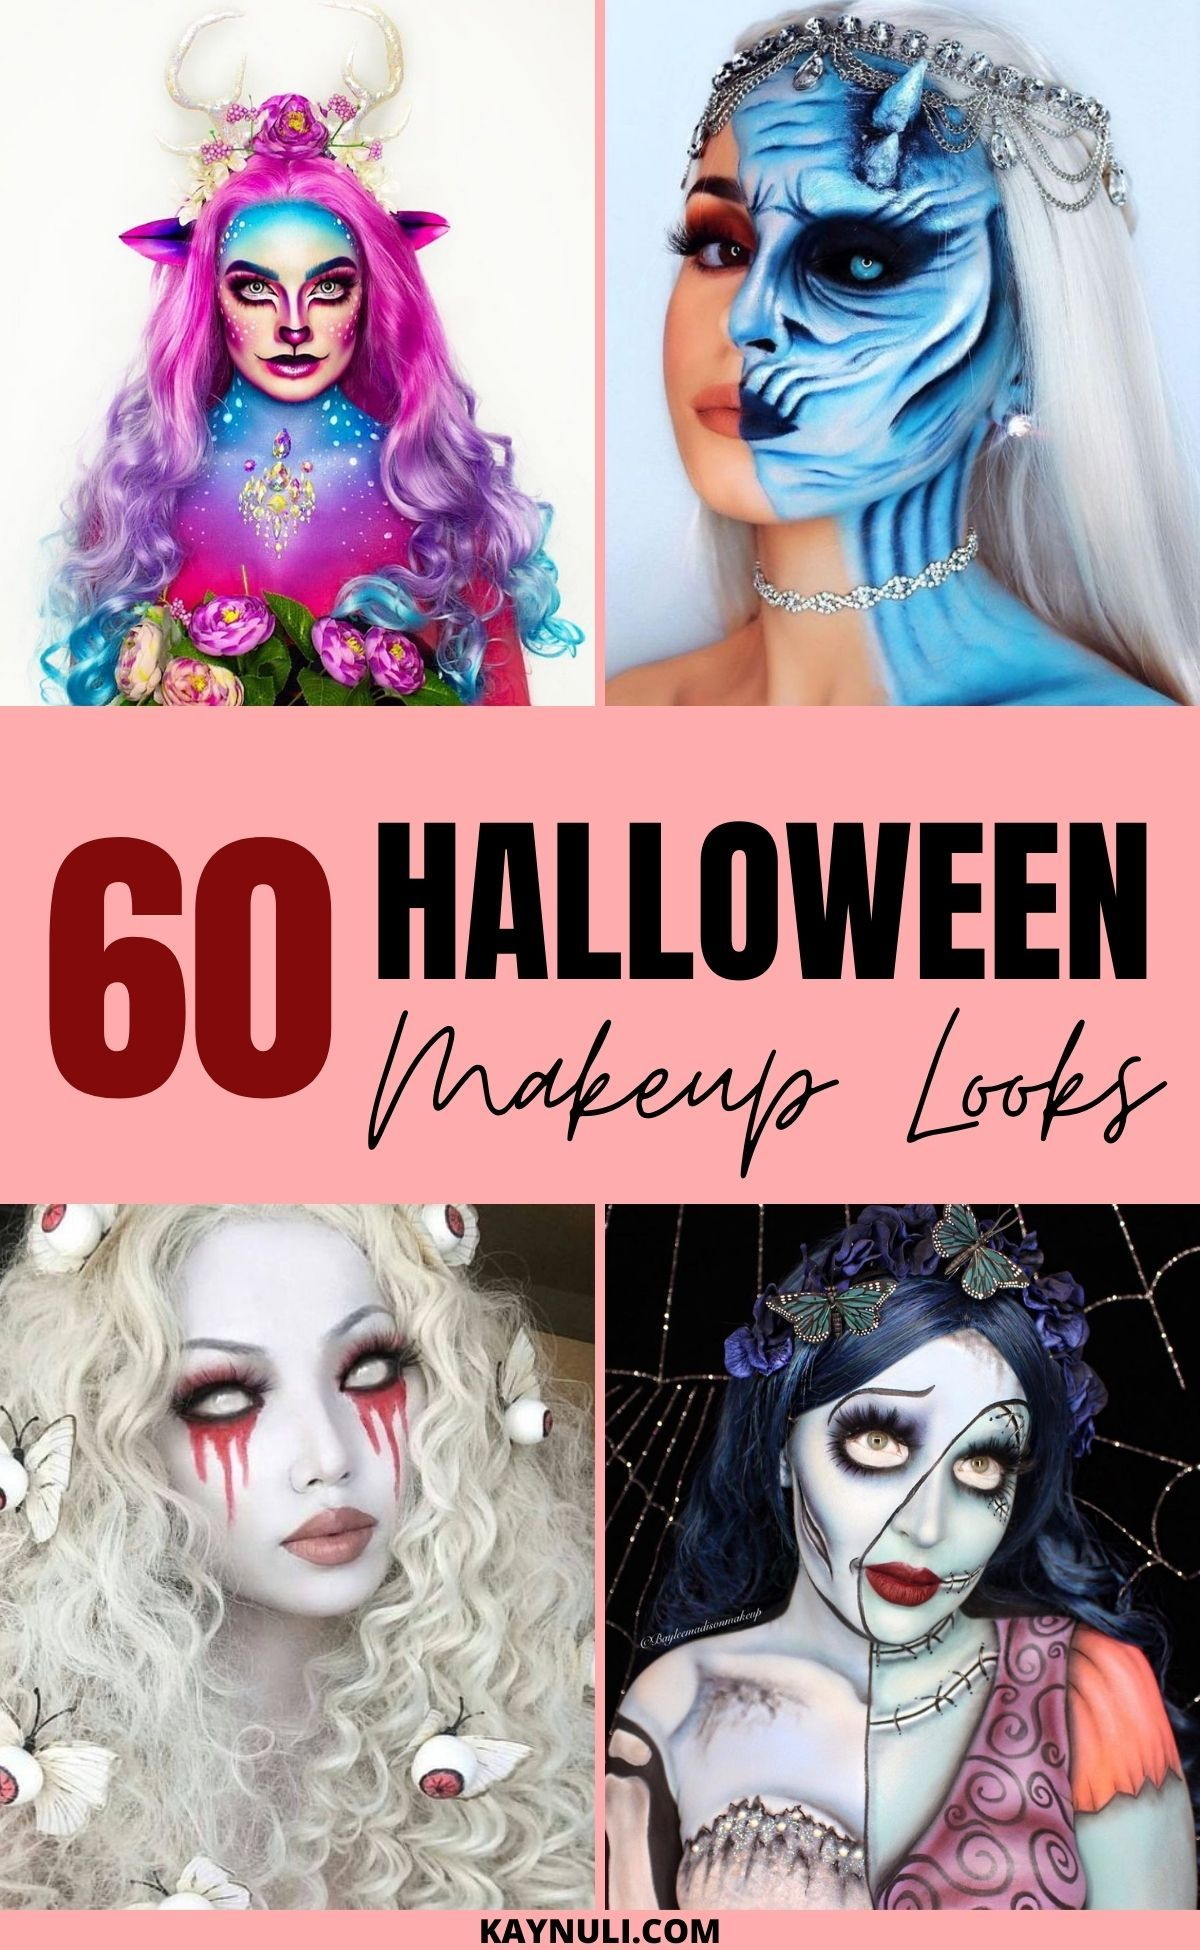 Remake Vs 2020 Halloween 60+ Halloween Makeup Looks That Will Inspire You   KAYNULI in 2020